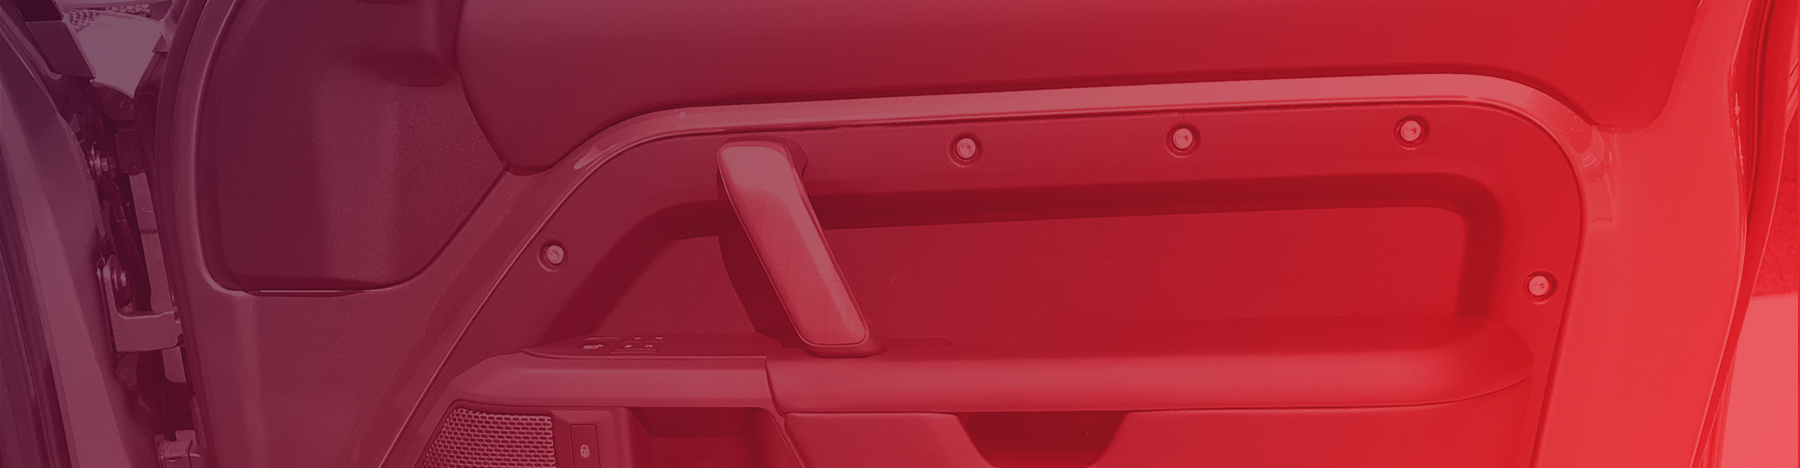 Even the smallest details reflect the Defender's character